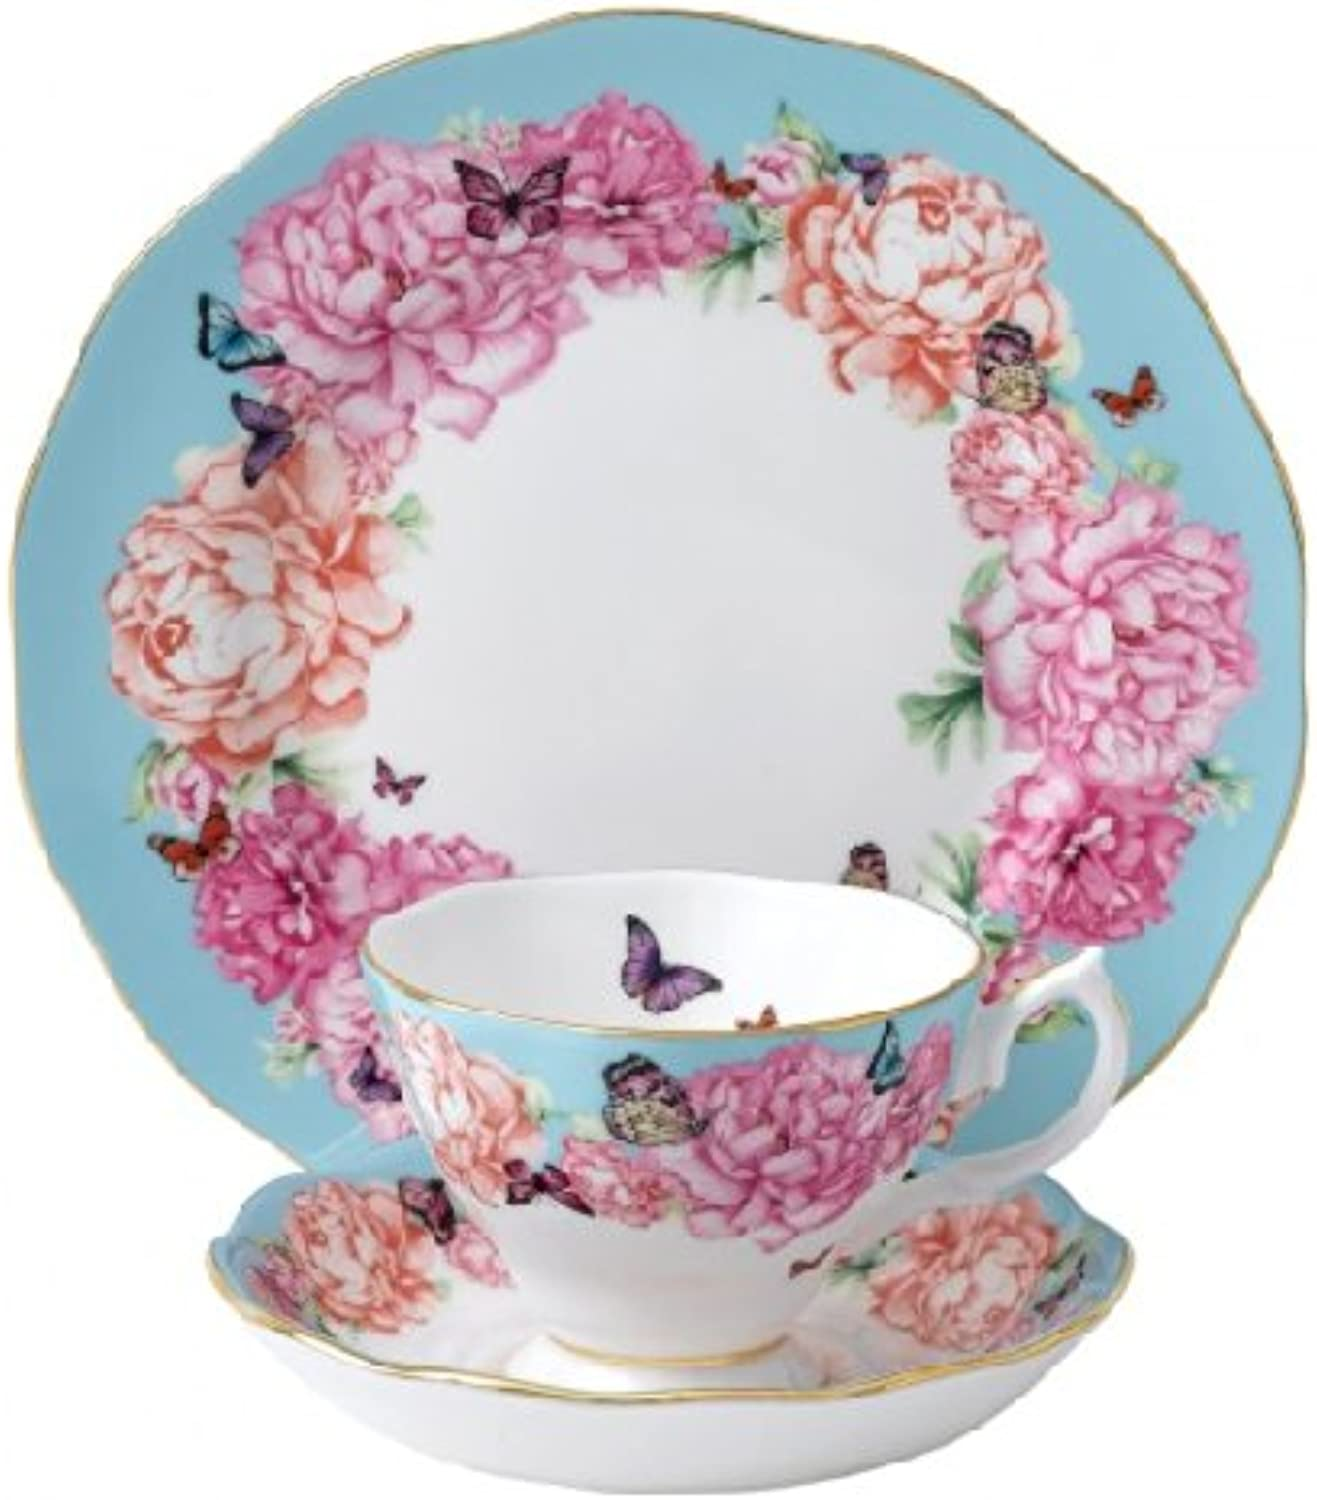 Royal Albert Miranda Kerr Devotion 3 Piece Tea Set